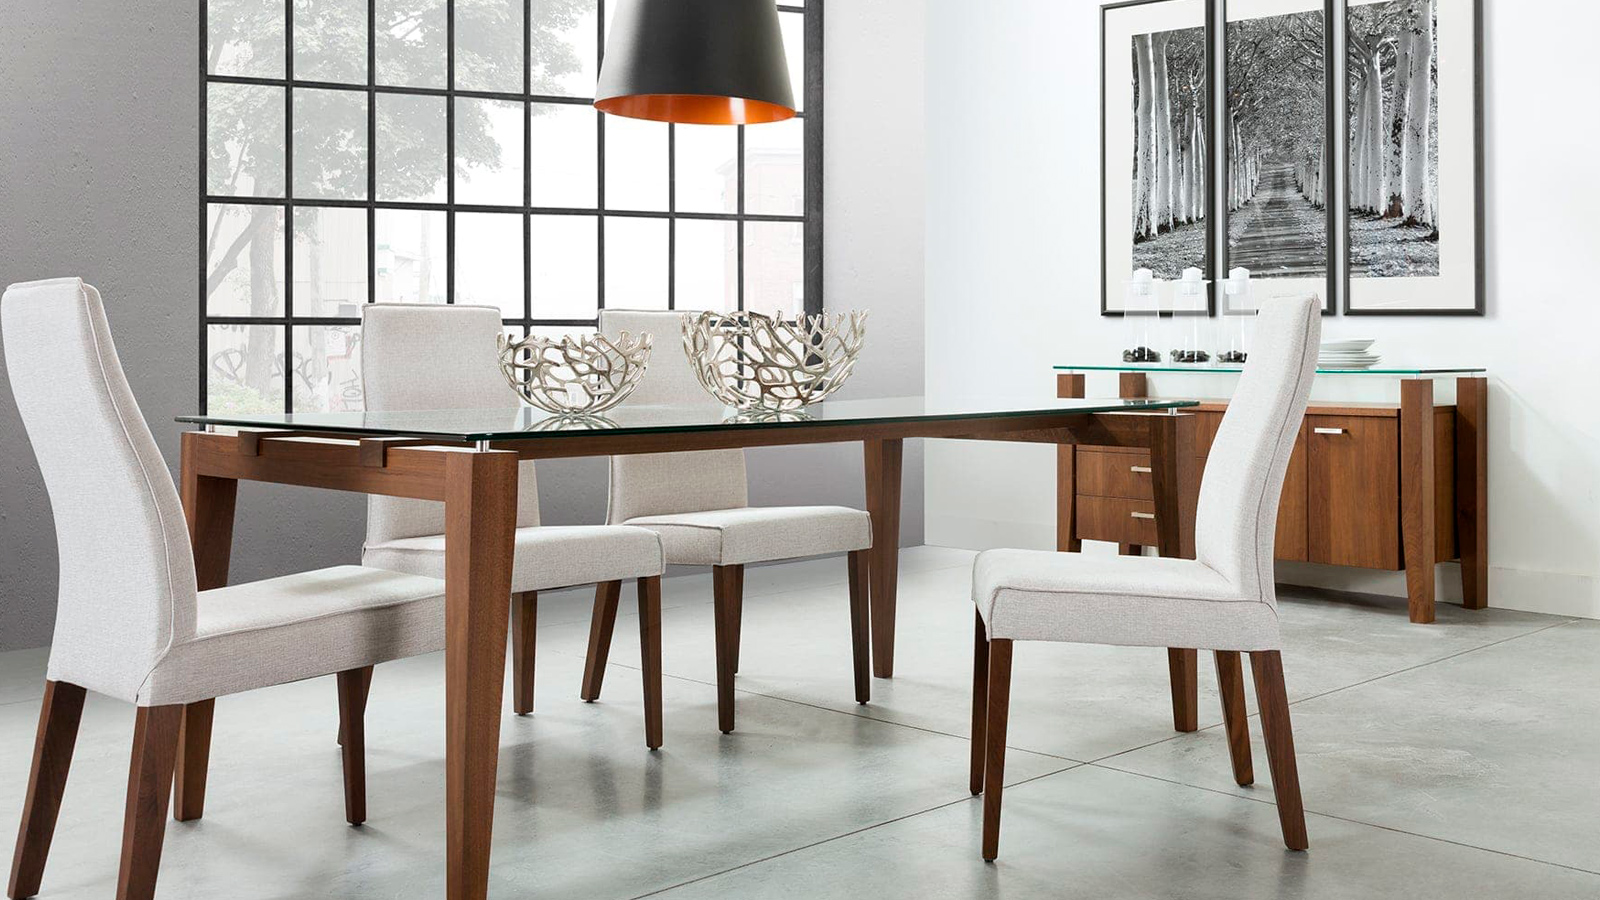 Delicieux Mobilier NorSud